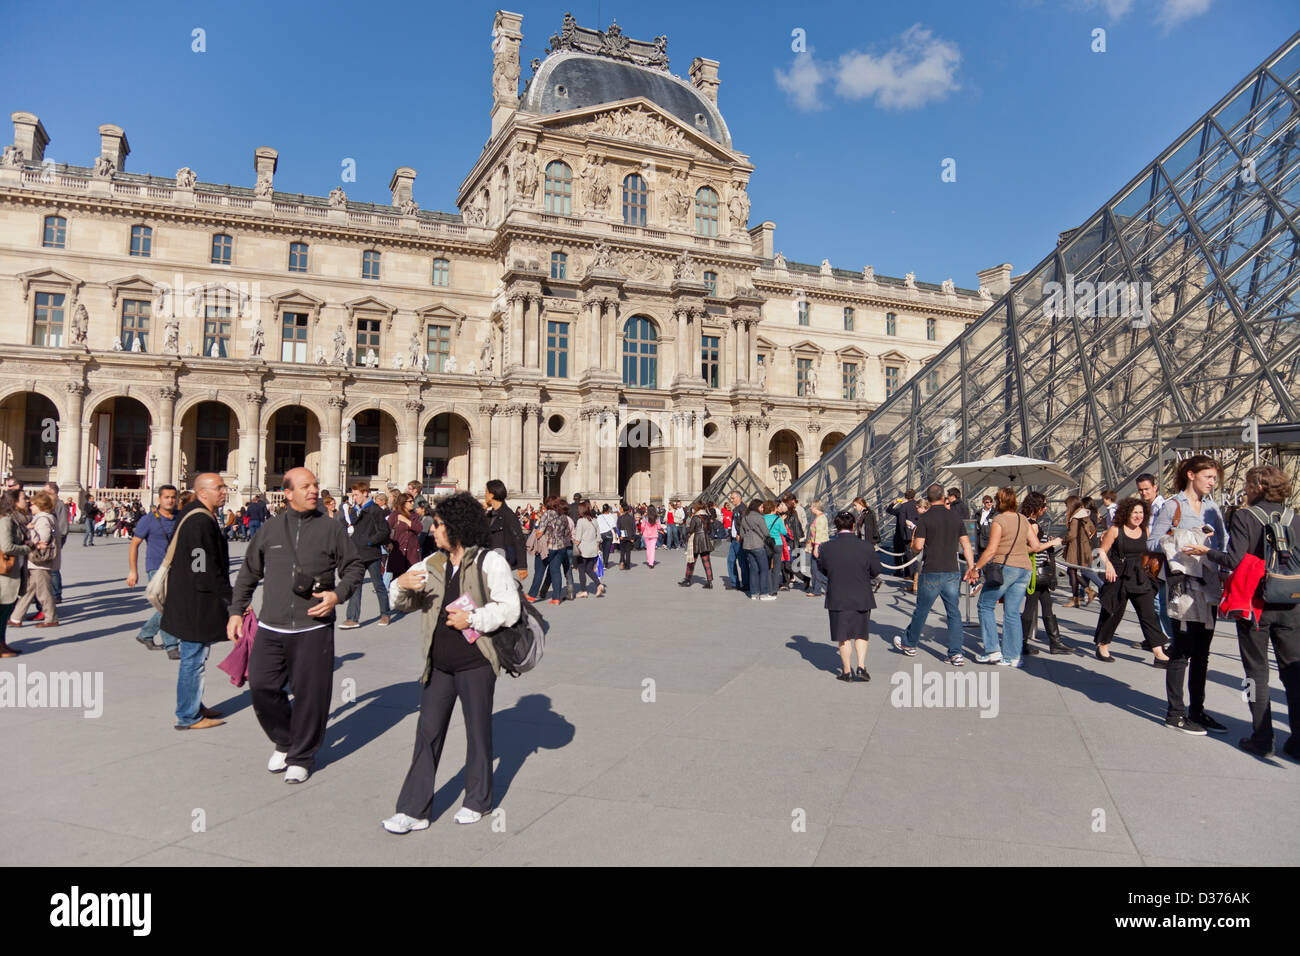 People in courtyard of the Louvre in Paris, France: the world's most visited museum. Pei's glass pyramid - Stock Image